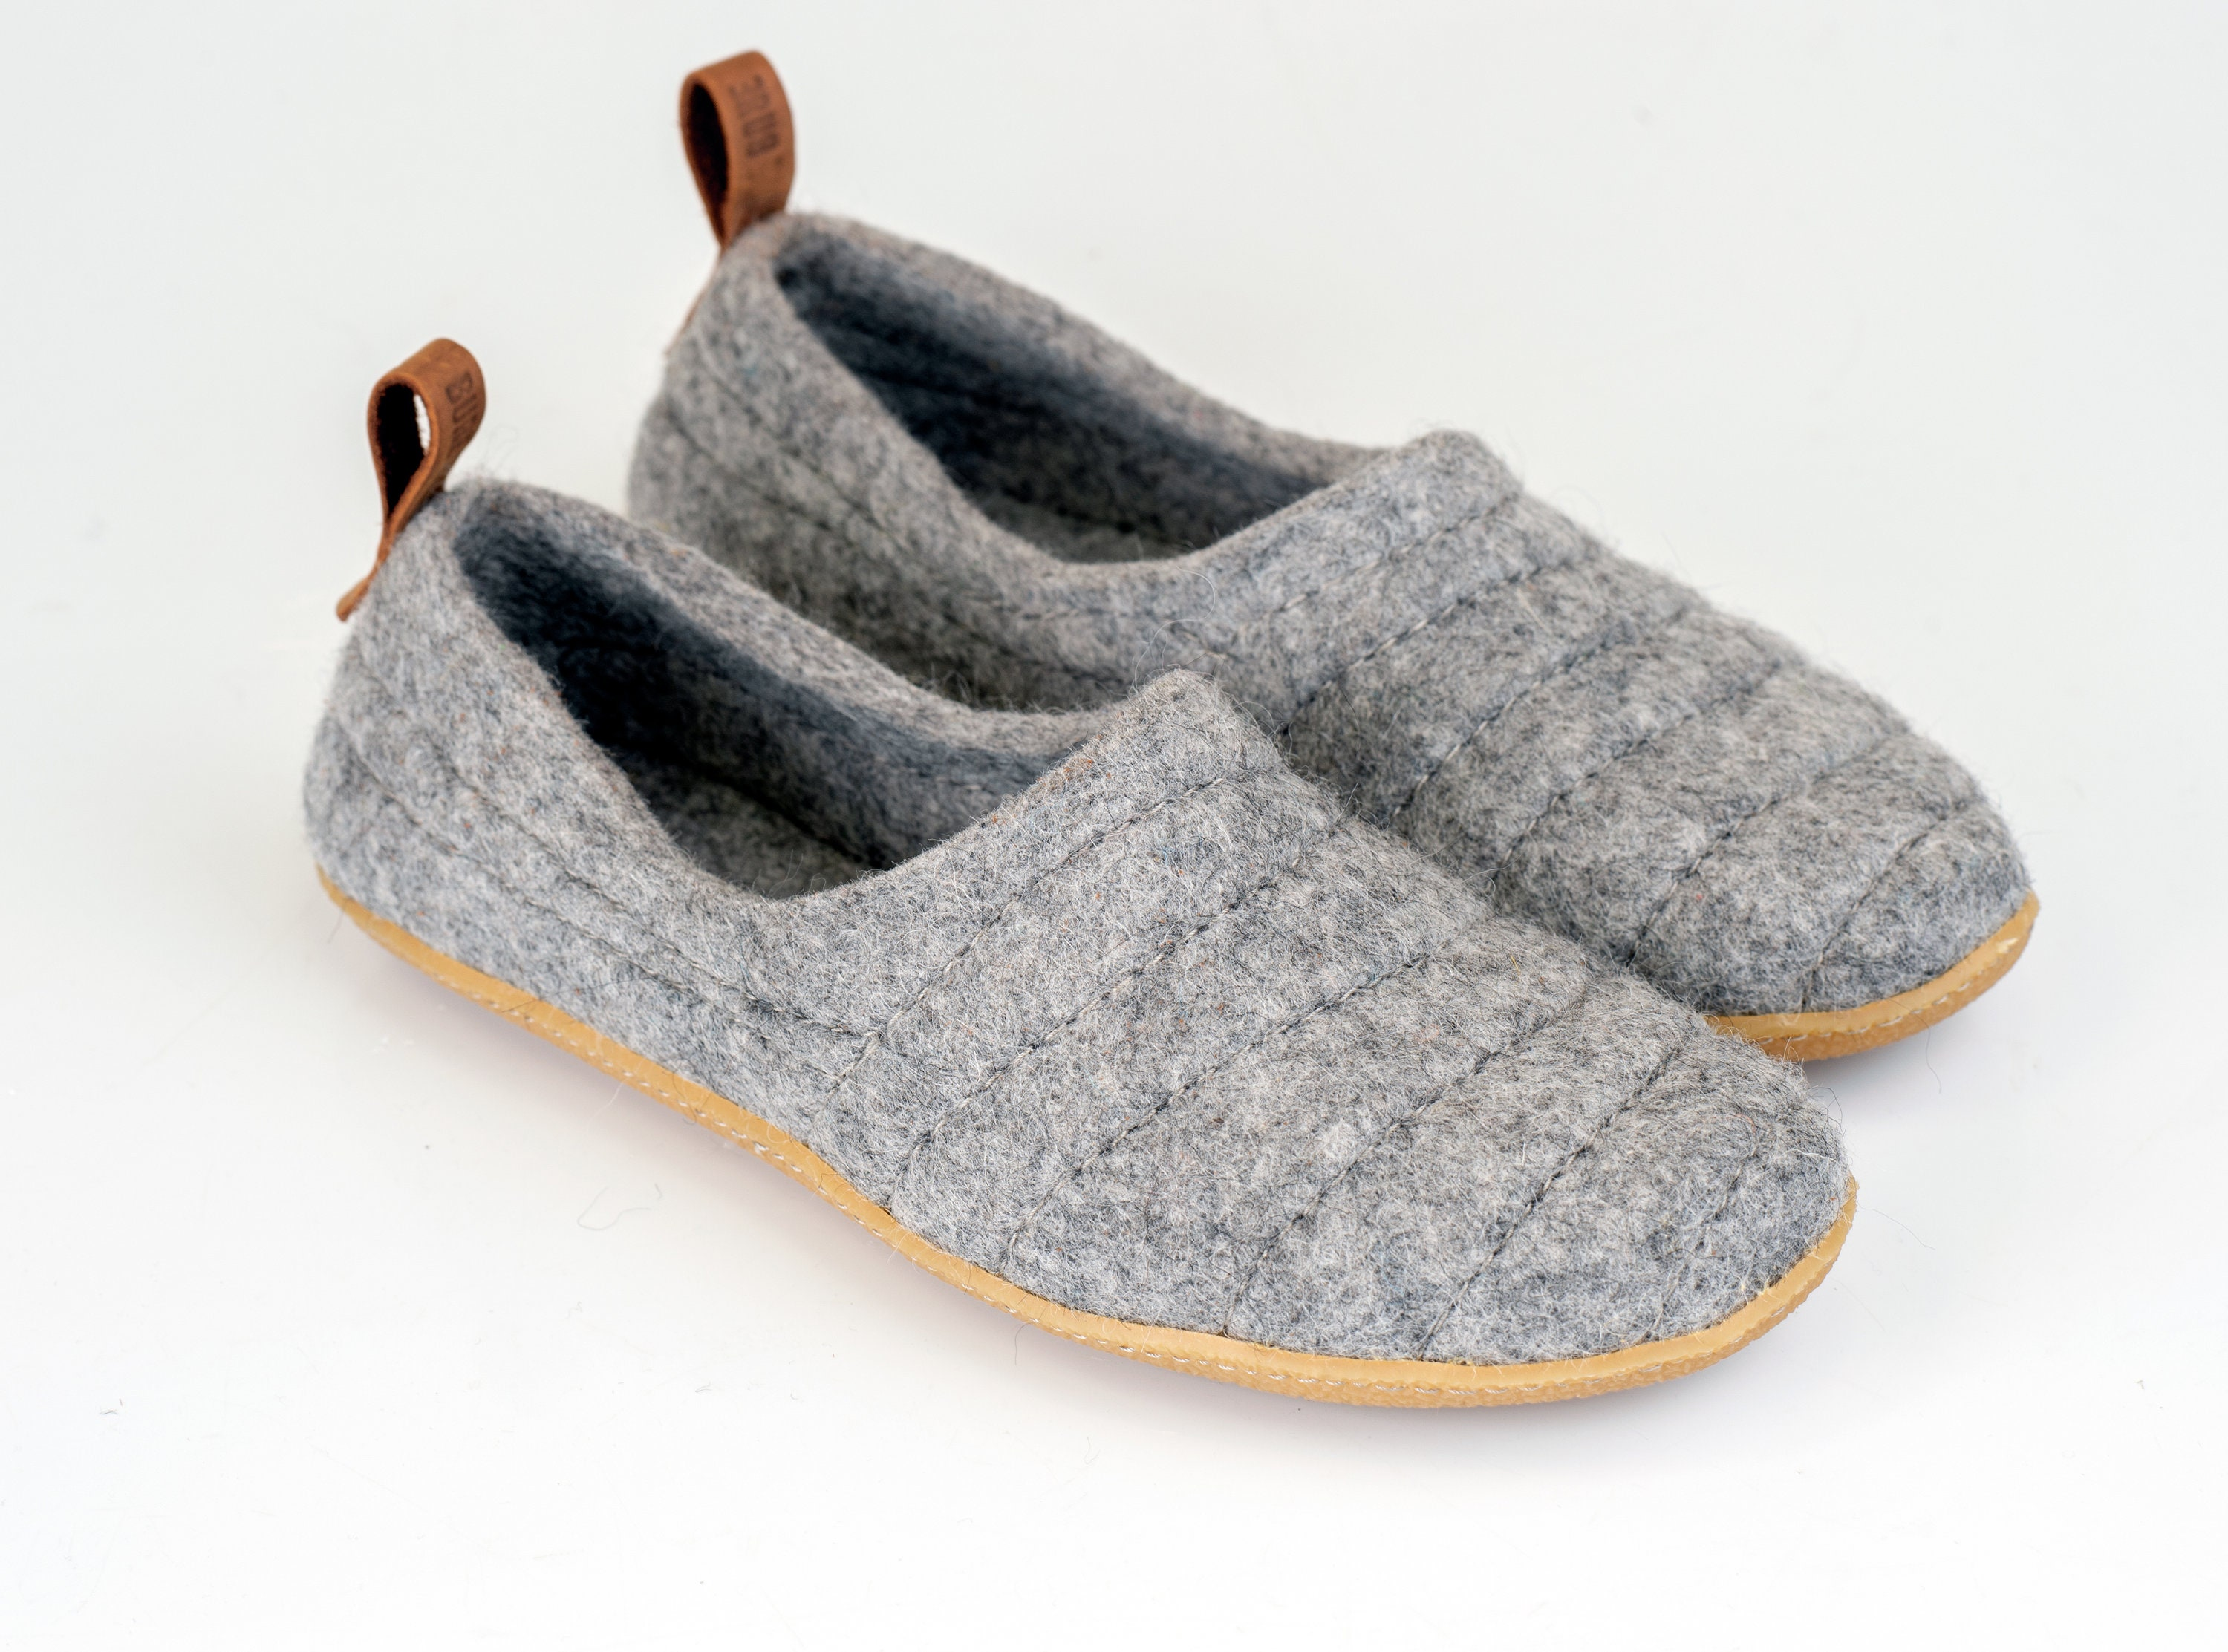 8e96425d20f NEW light gray COCOON woolen slippers with rubber sole & pull loop